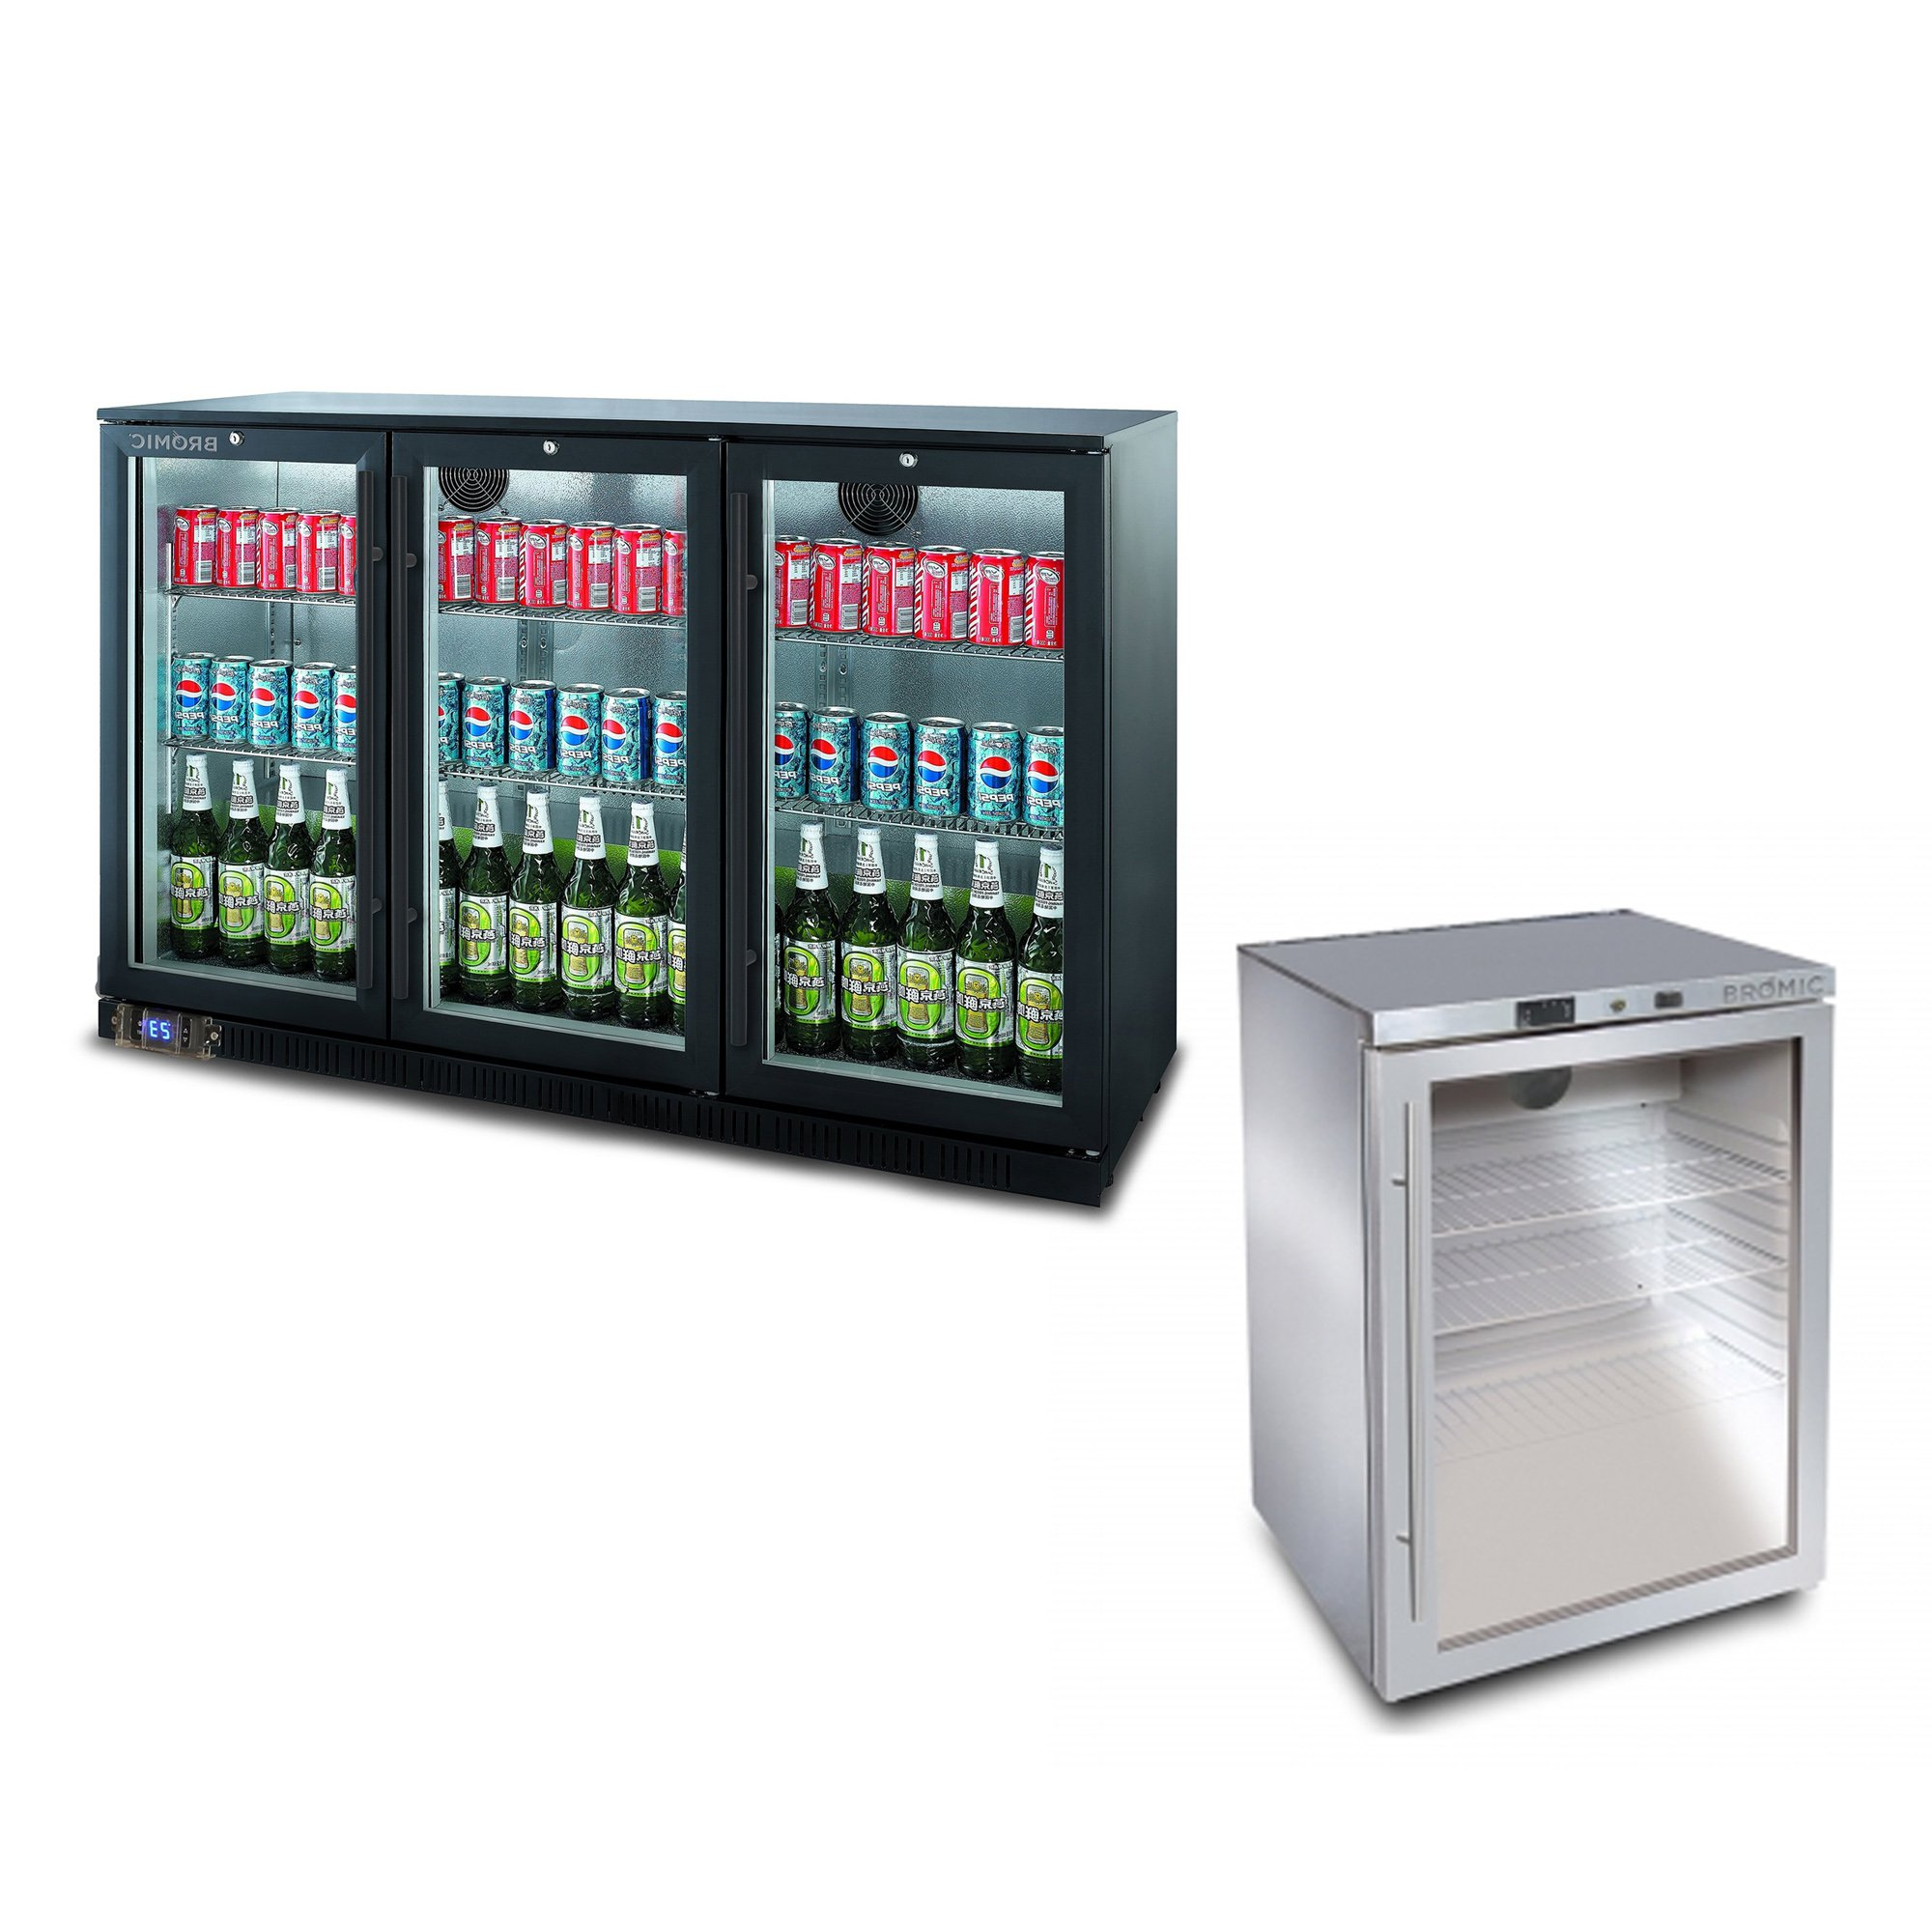 BAR CHILLERS AND FREEZERS